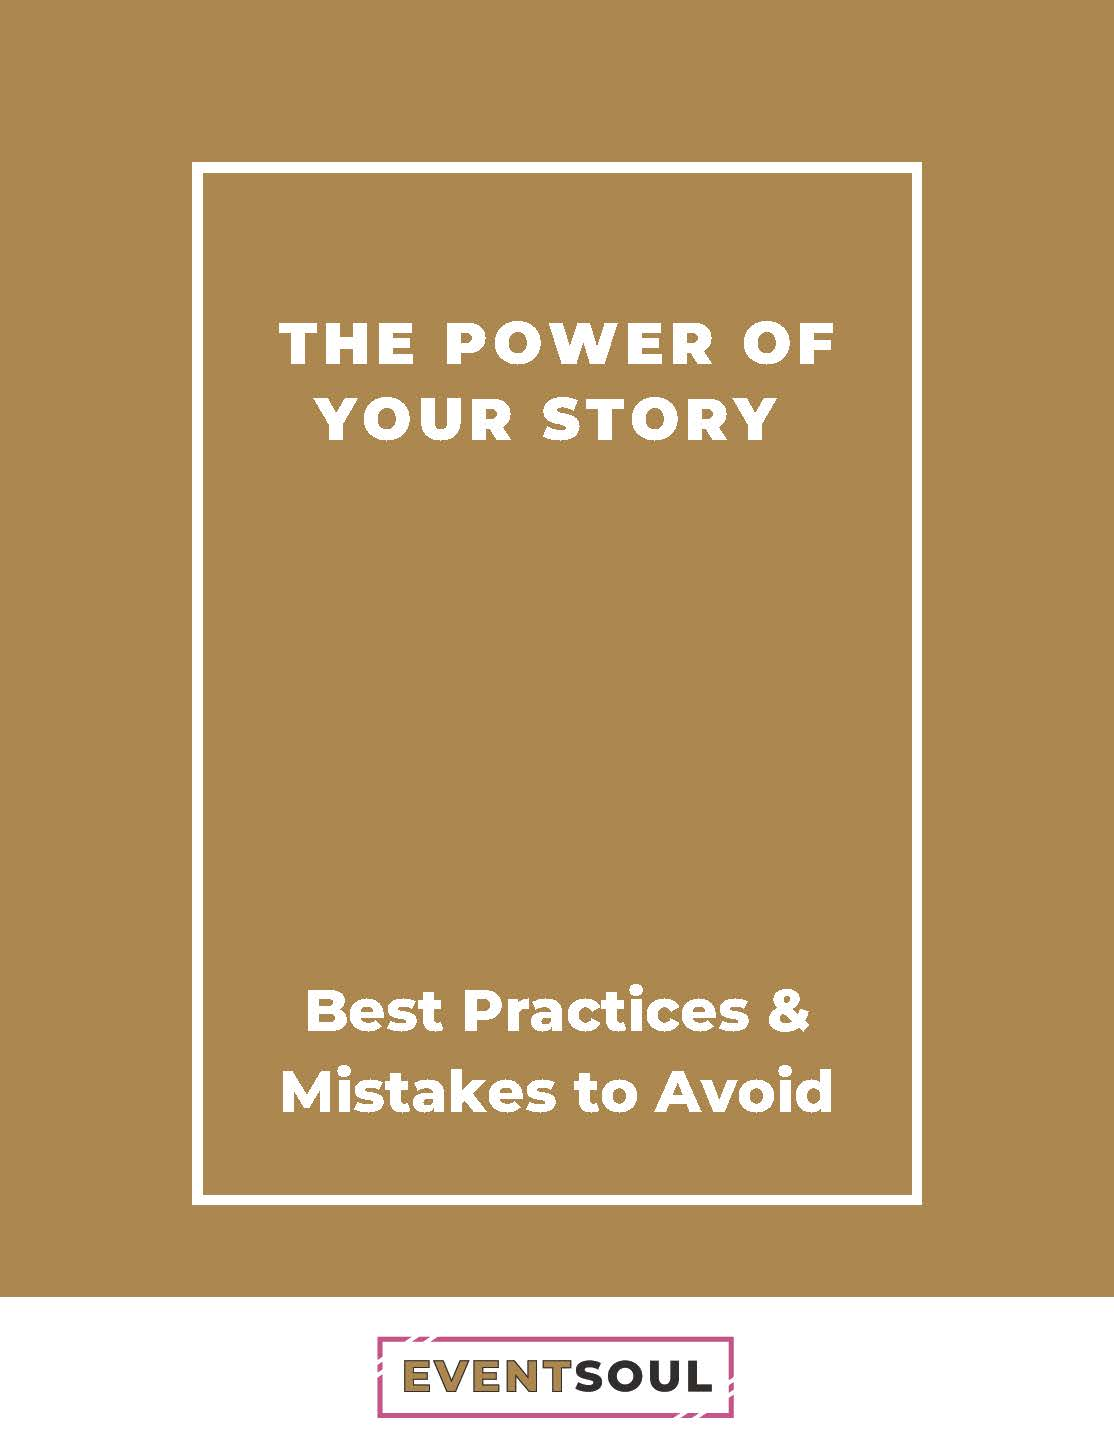 The Power of Your Story Tips & Mistakes - Cover.jpg